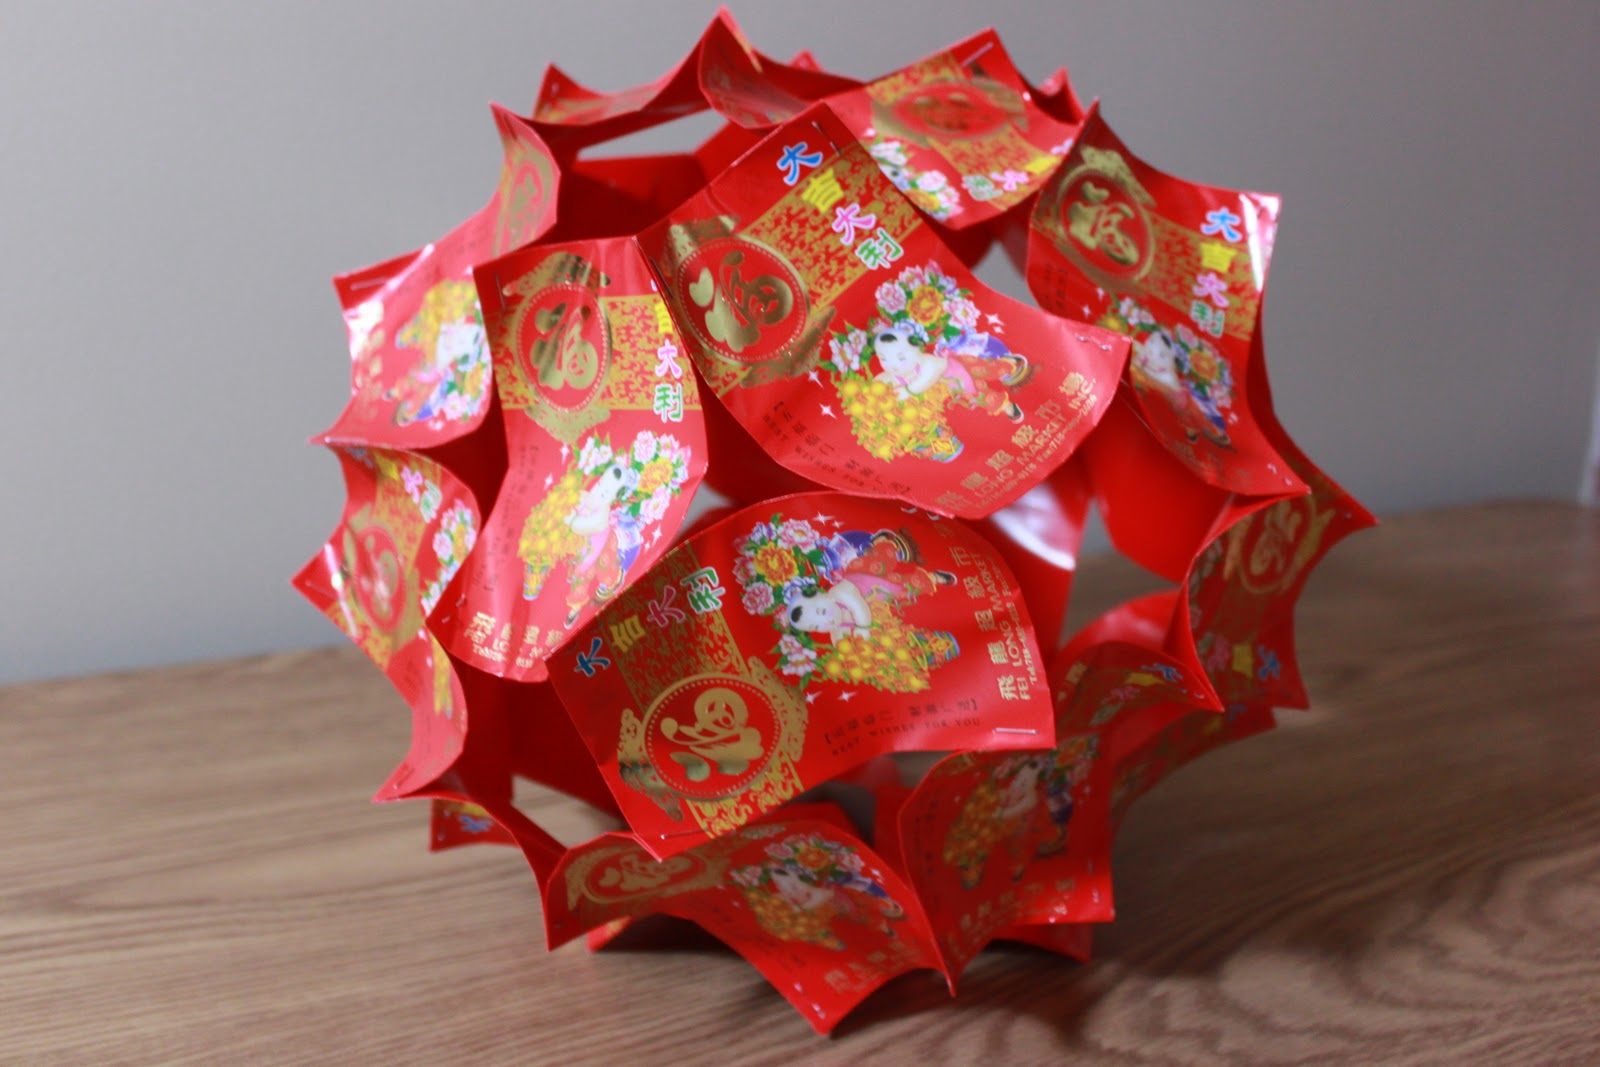 Beautiful lucky red lantern to decorate your home for the lunar new year...